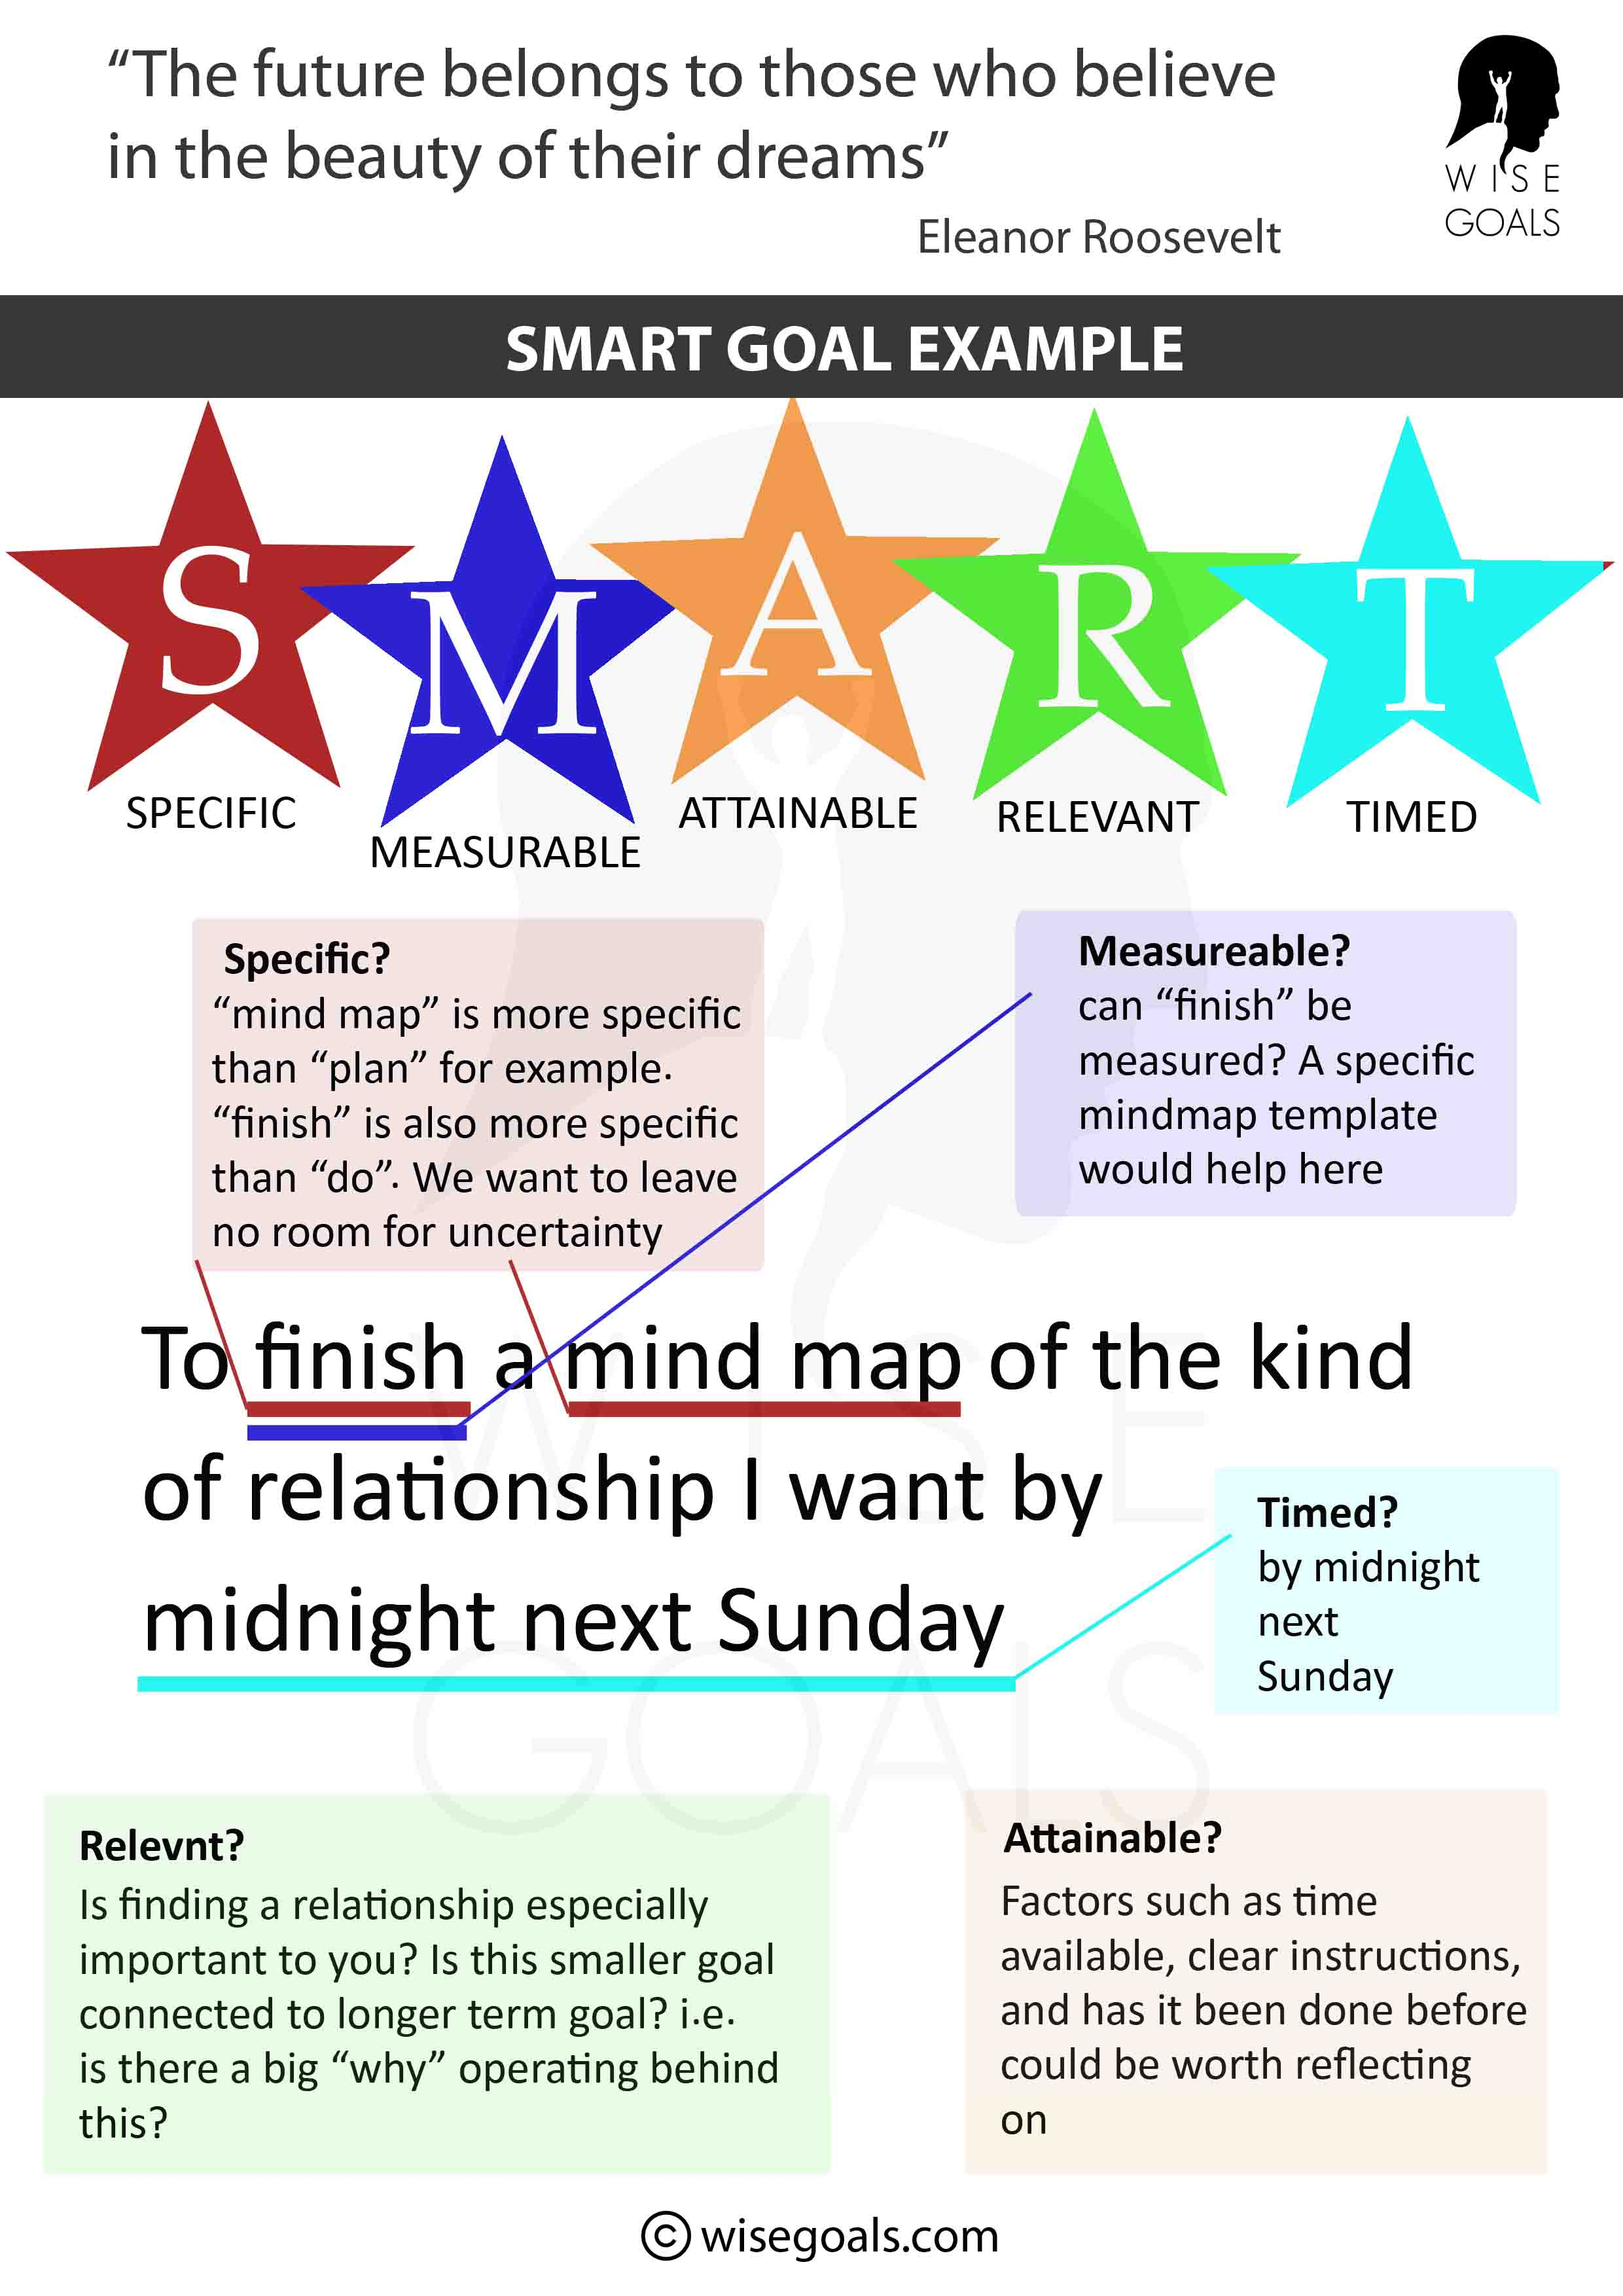 Smart goal example: Love